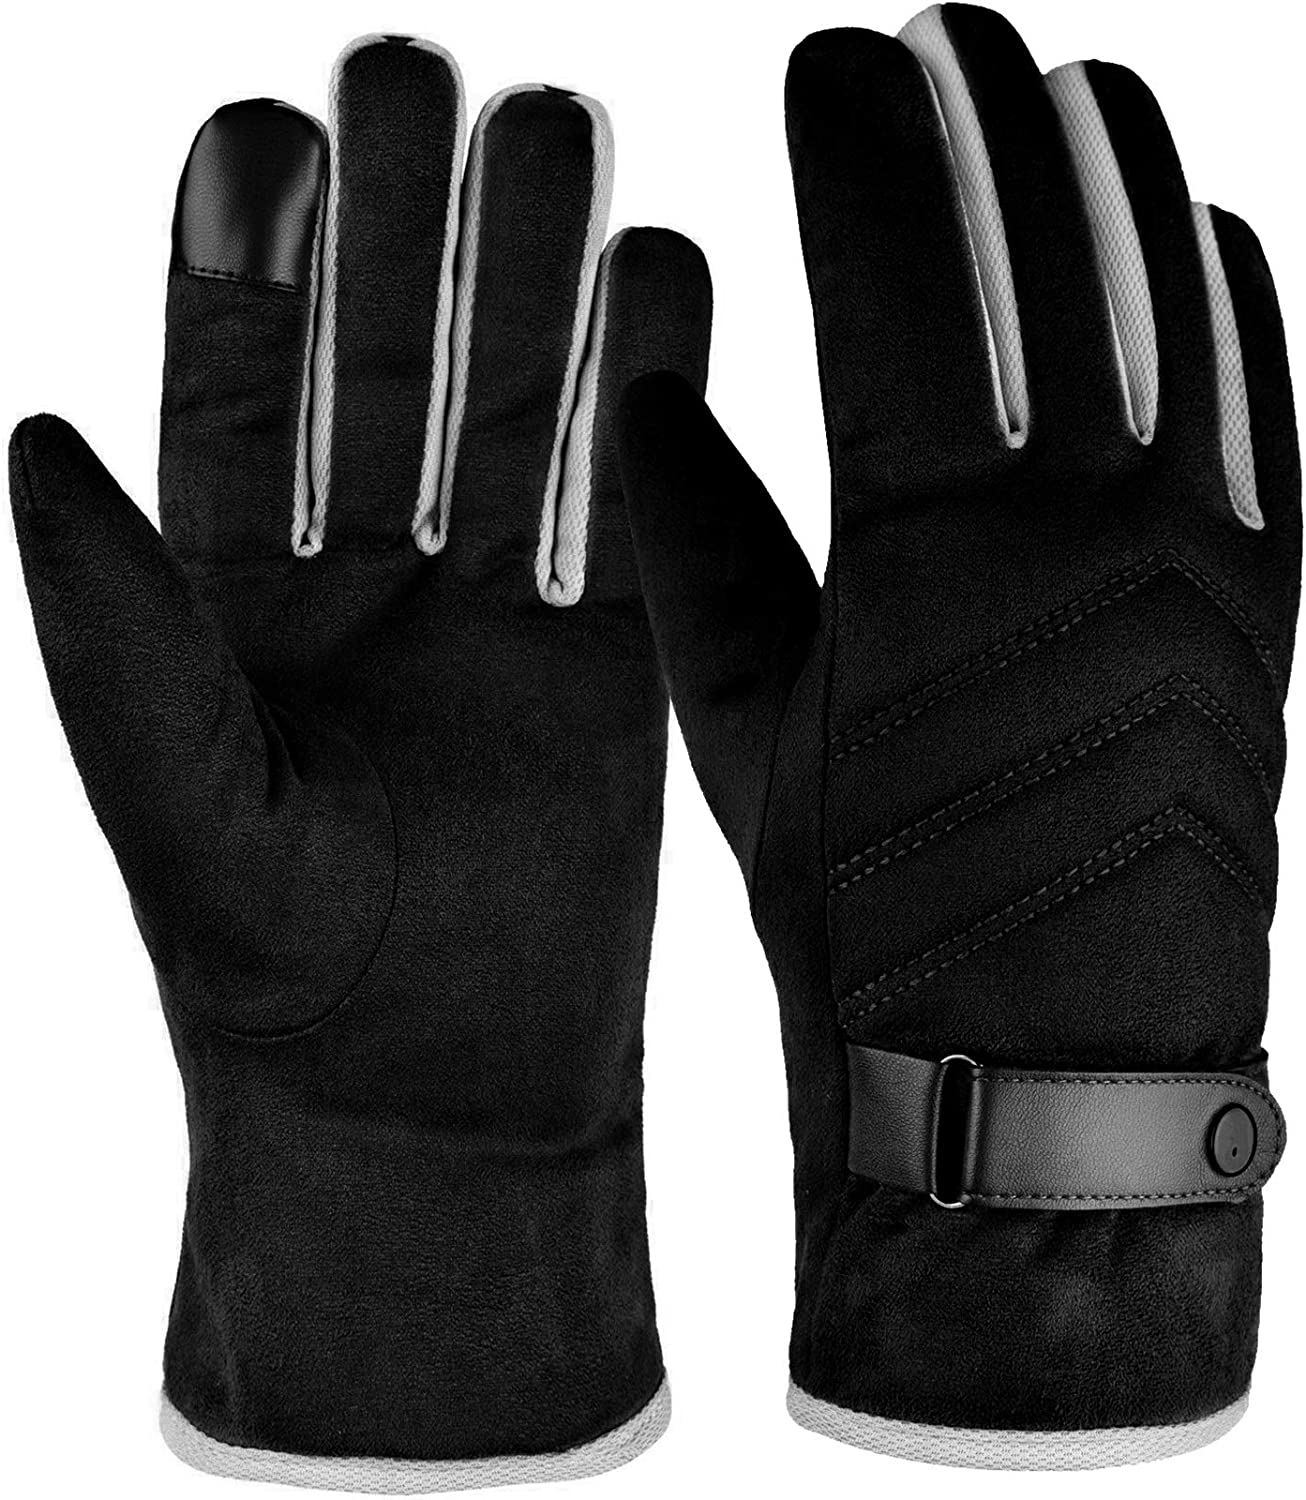 MiGoo Winter Warm Gloves for Men Women, Windproof Thermal Gloves for Cold Weather Anti-Slip Gloves for Driving Cycling Running Skiing Fishing Hiking Outdoor Sports Black